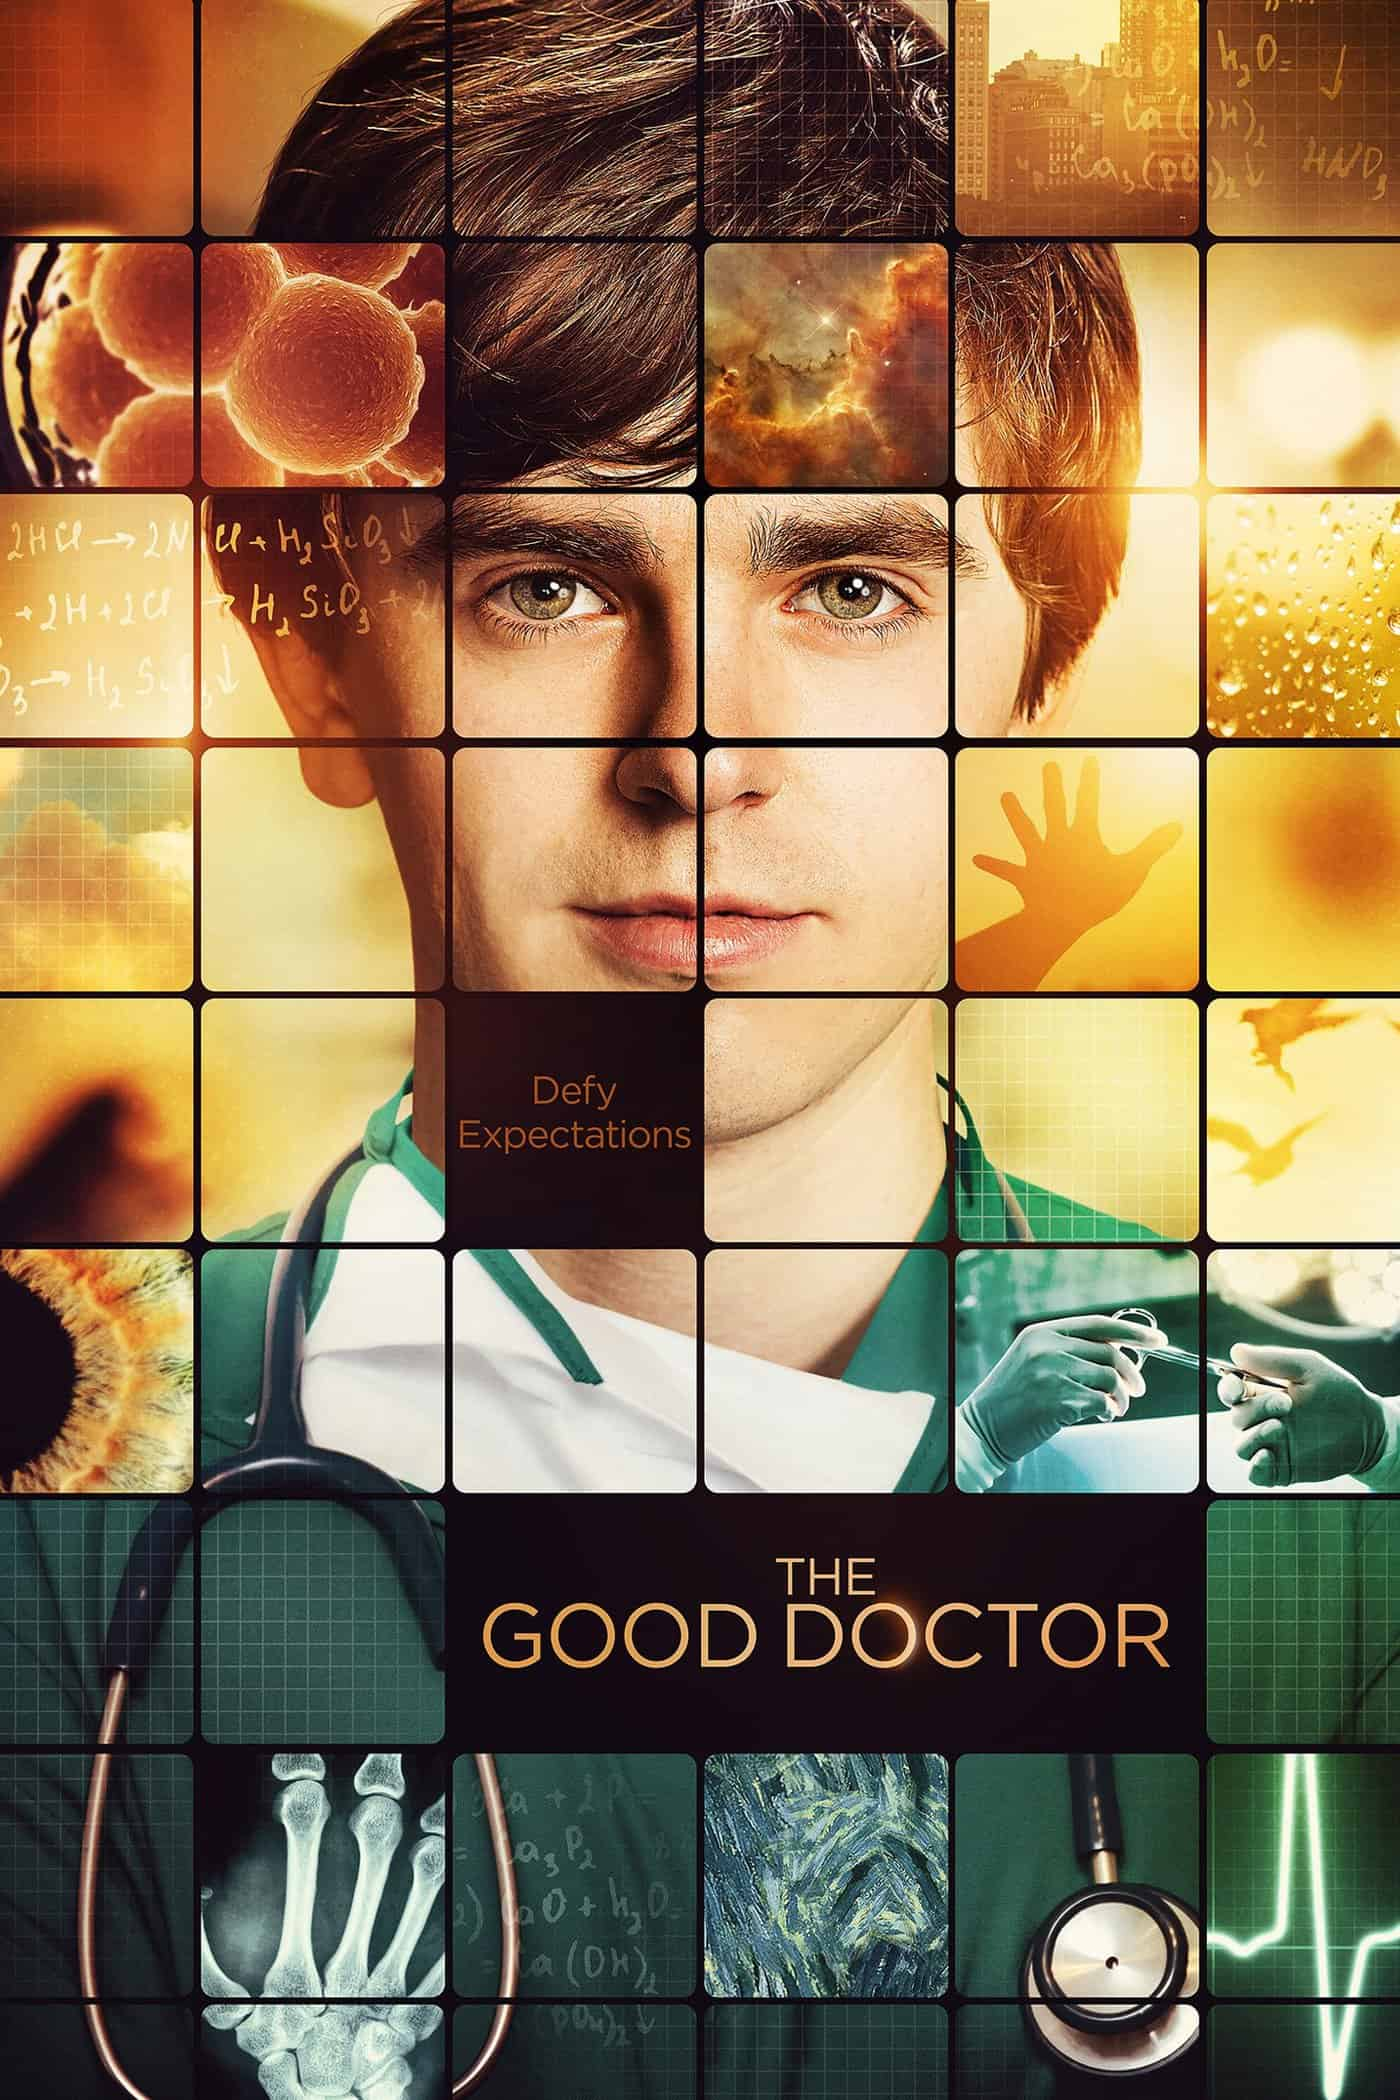 The Good Doctor, 2011